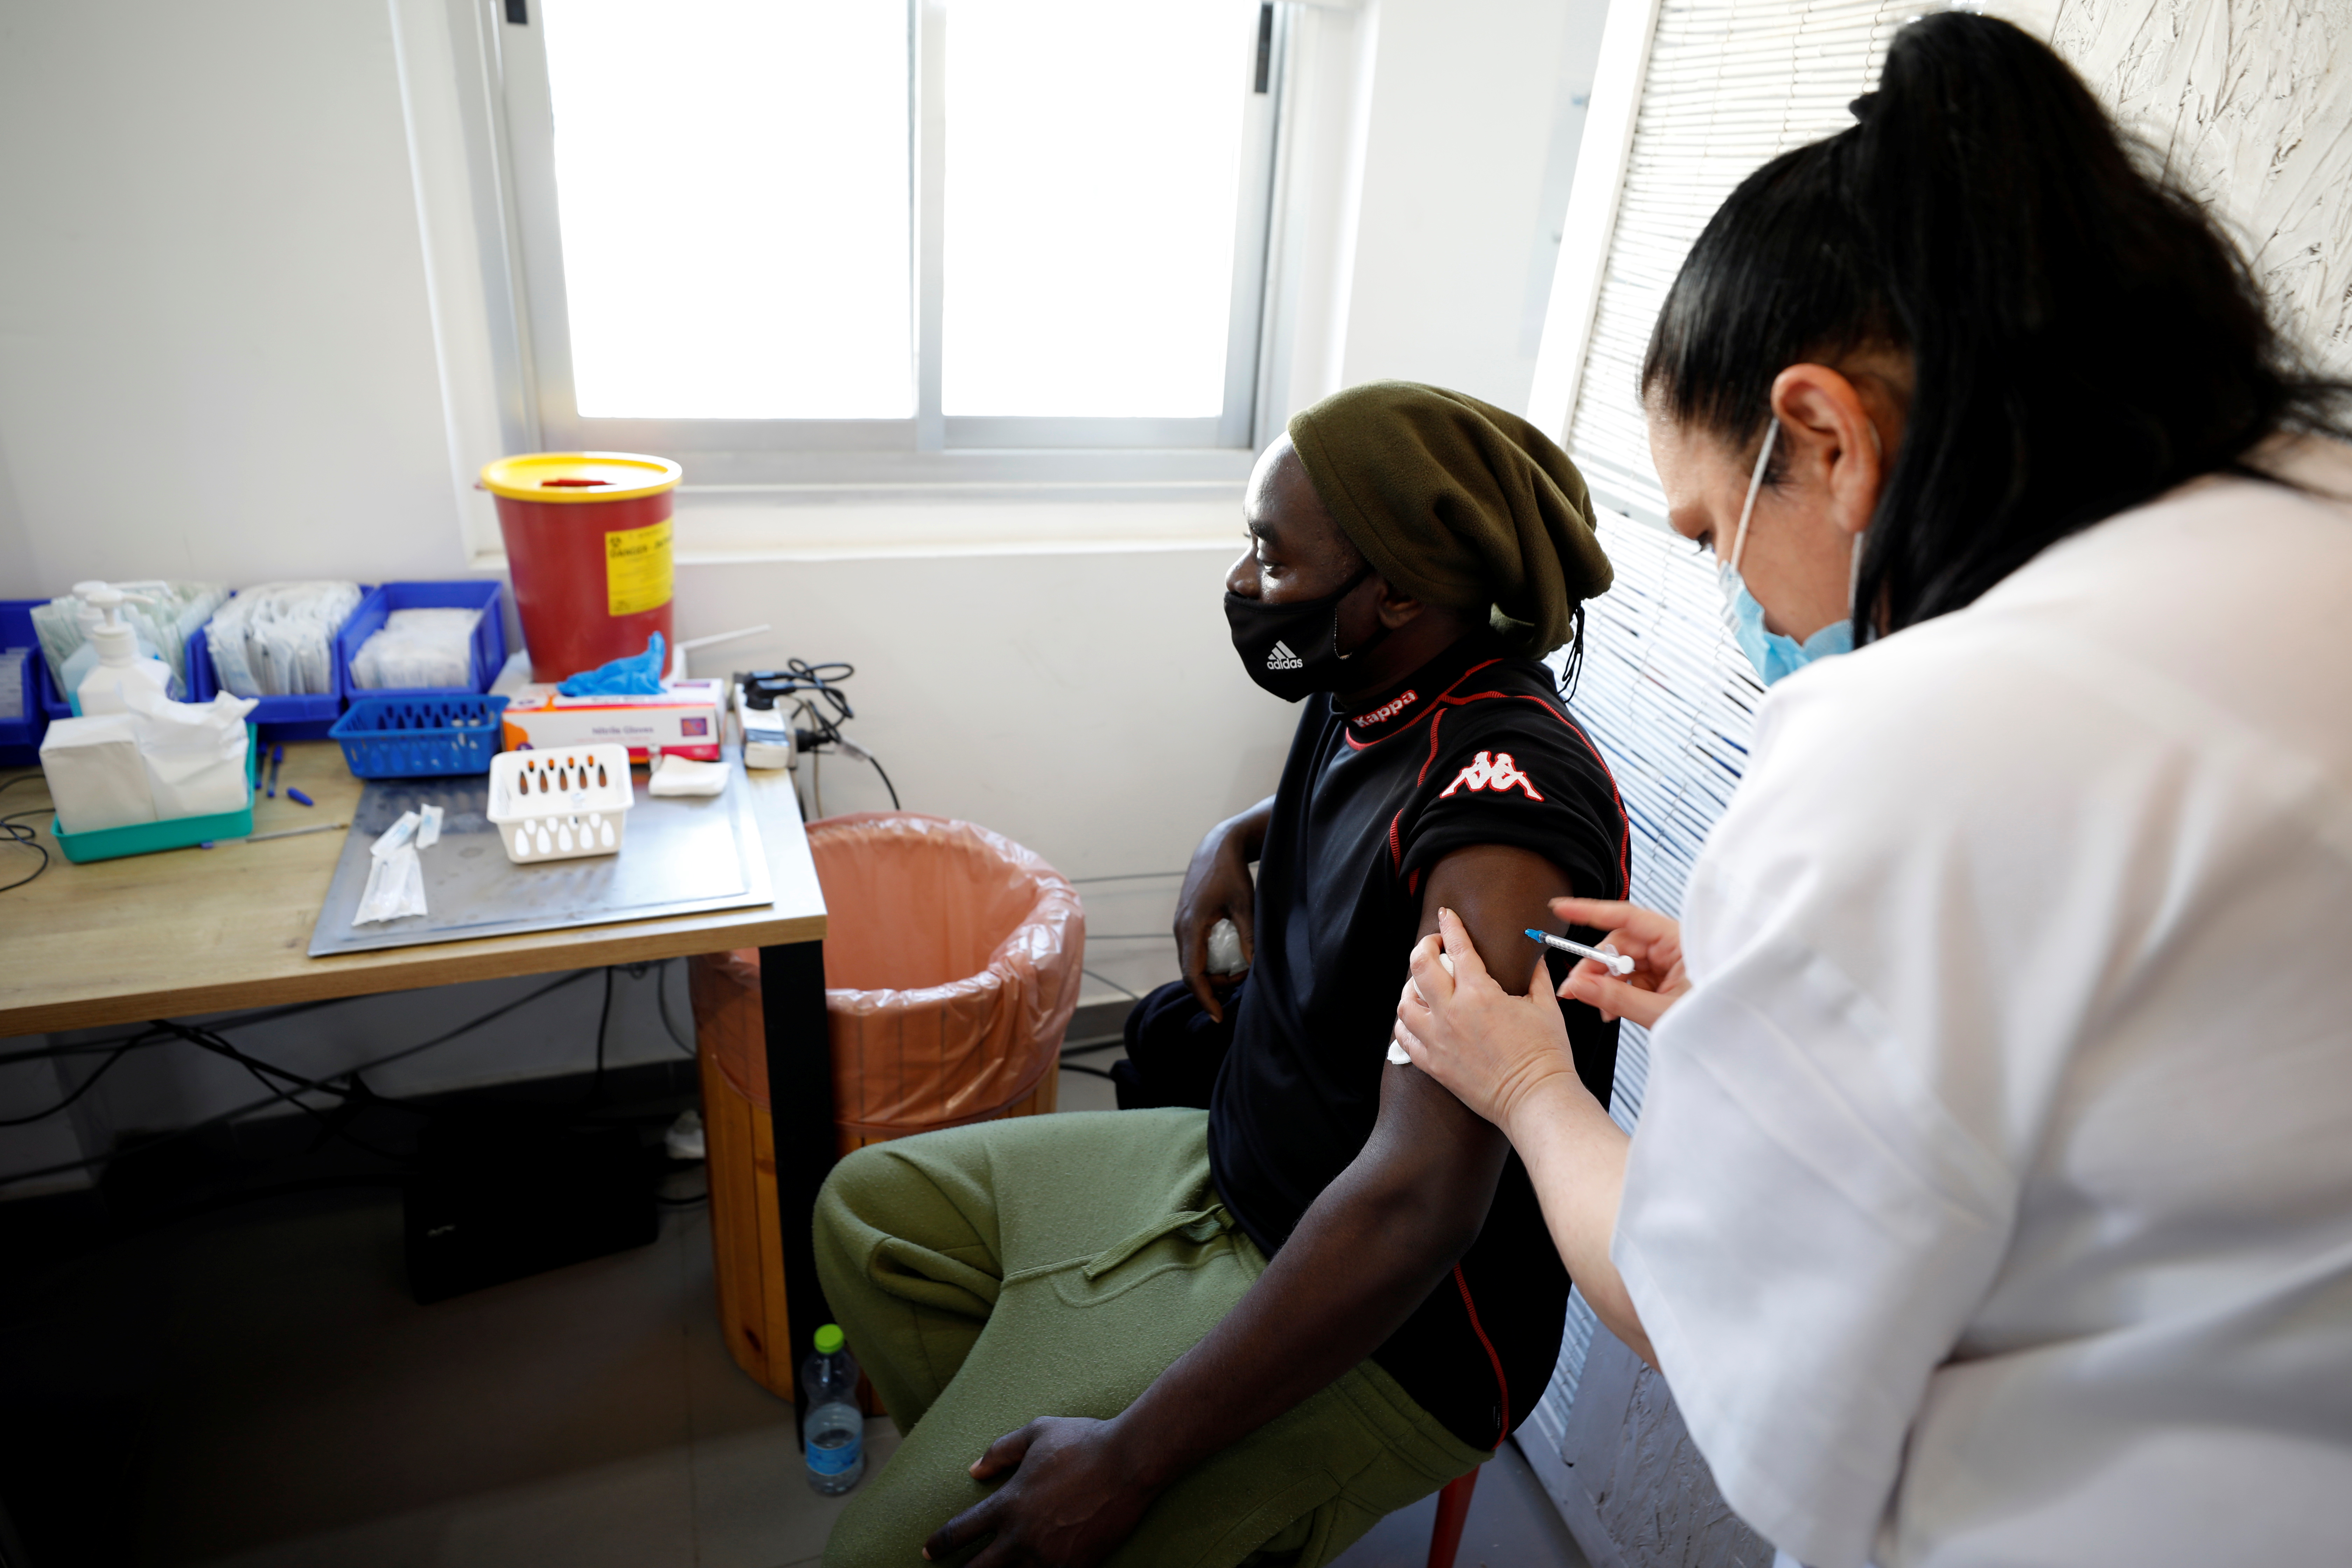 A medical worker administers a vaccination against the coronavirus disease (COVID-19) at a newly-opened centre in a neighbourhood with a high residency of foreign nationals, including migrant workers, in Tel Aviv, Israel February 9, 2021. REUTERS/Amir Cohen